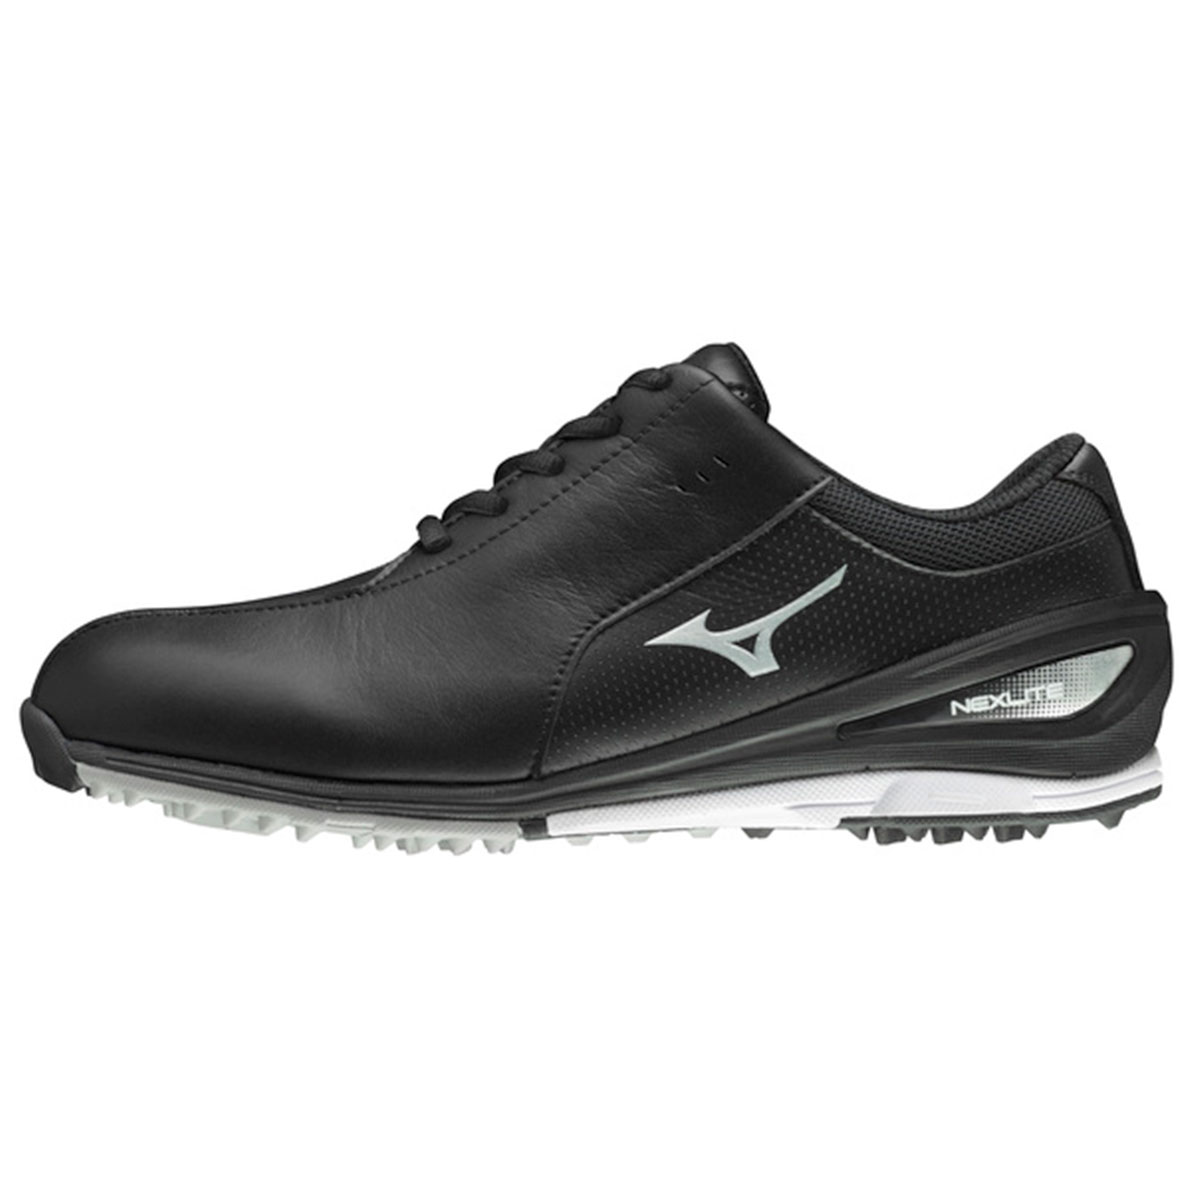 Mizuno Golf Shoes On Sale